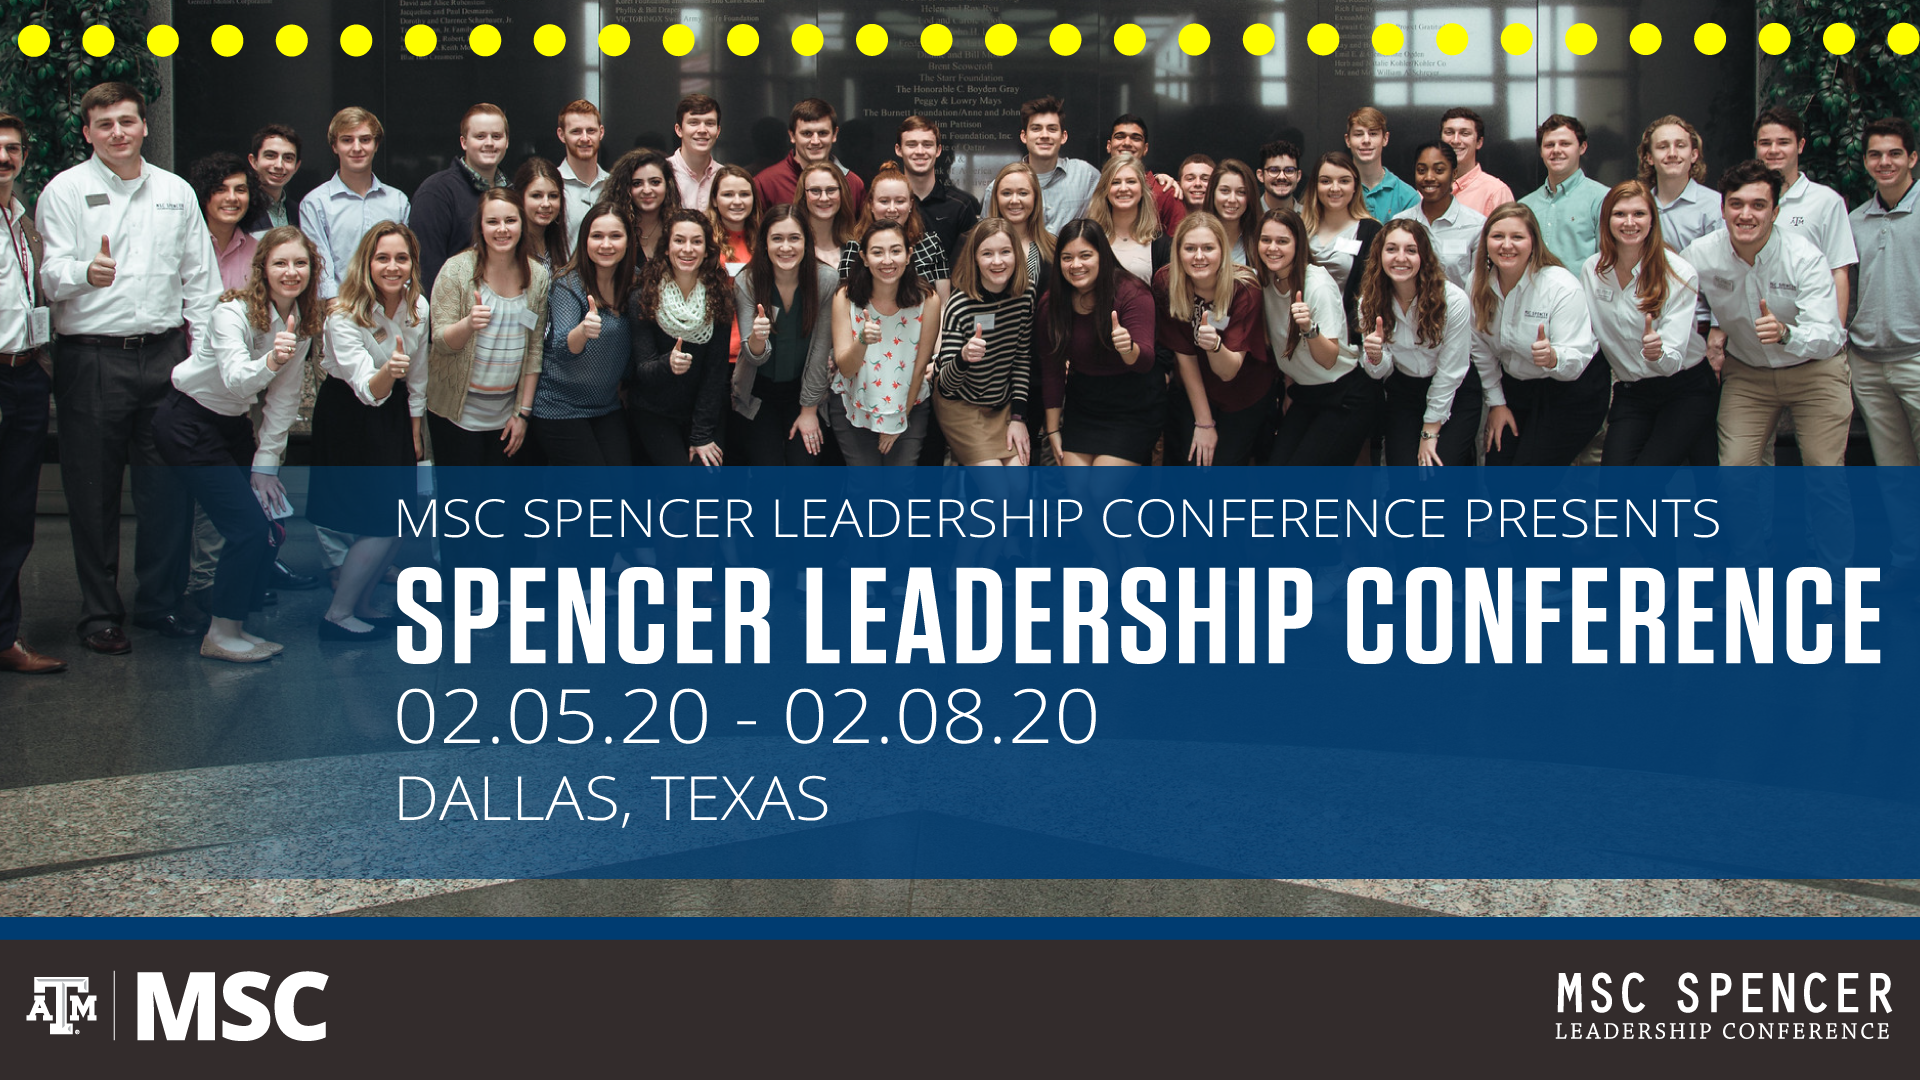 Spencer Leadership Conference, February 5–8, 2020 in Dallas, Texas.